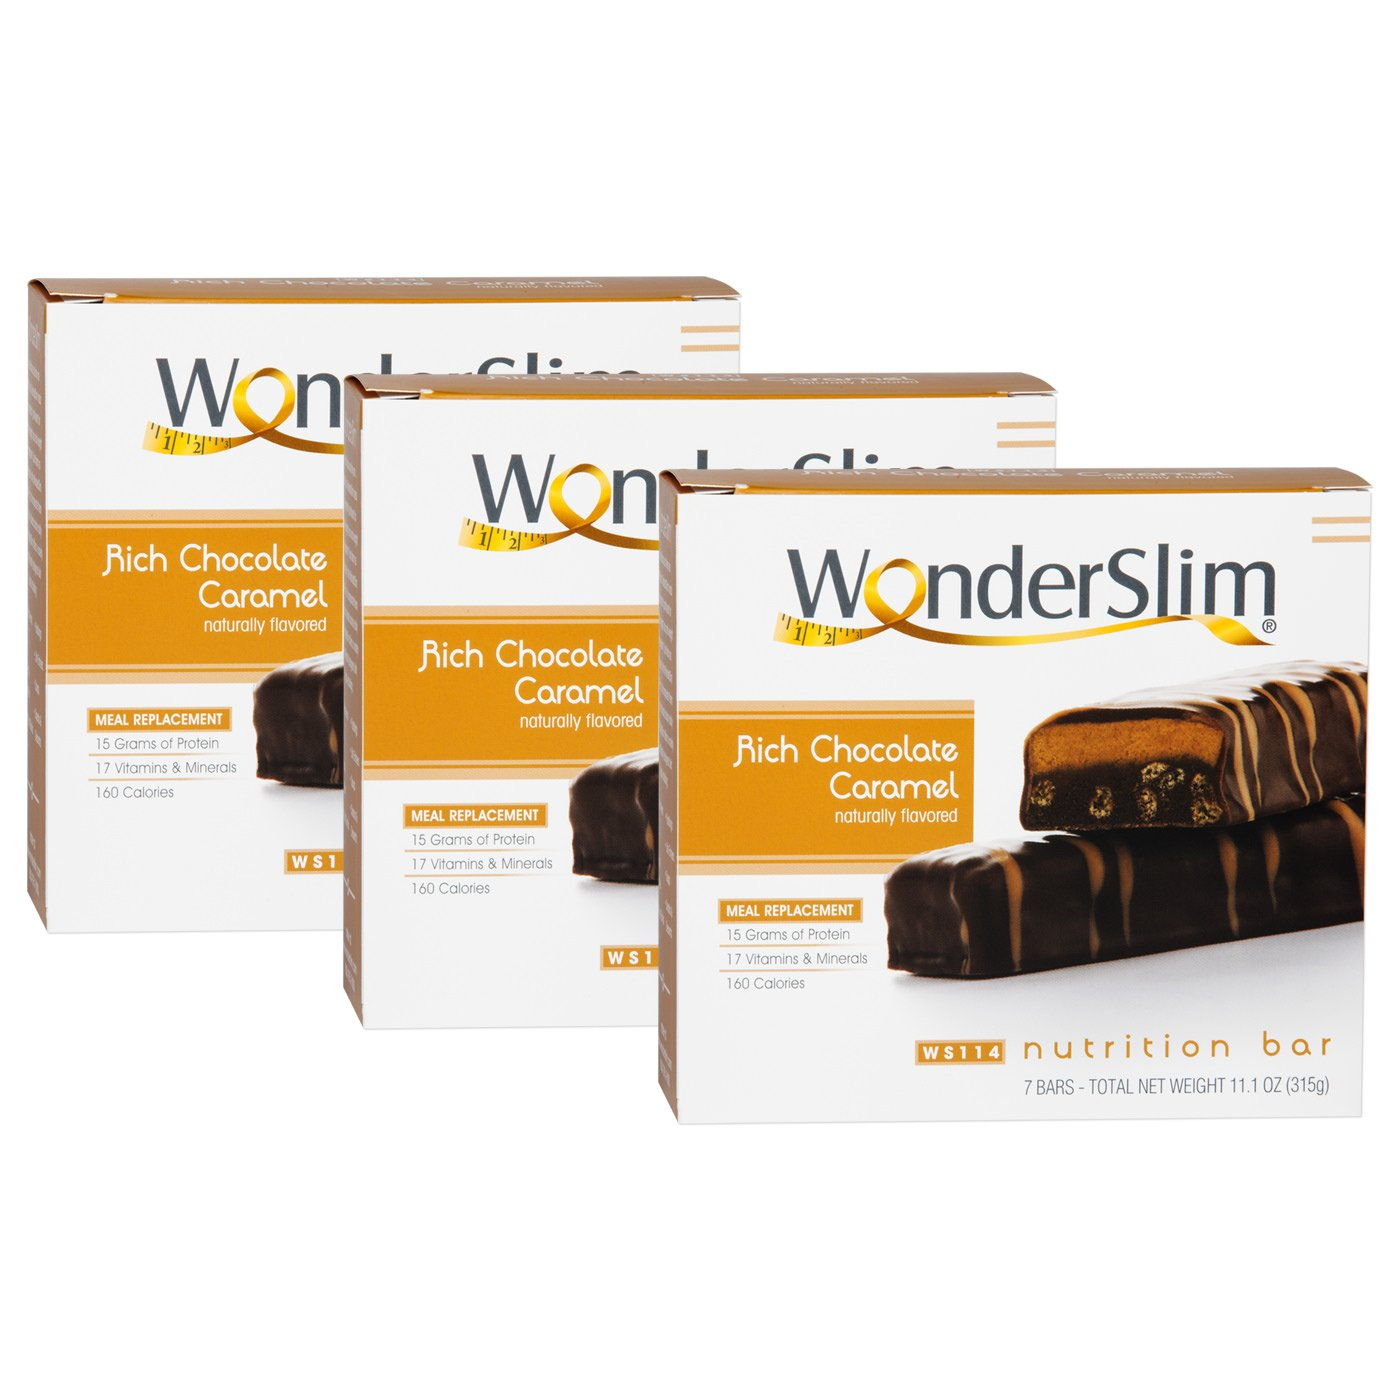 WonderSlim High Protein Meal Replacement Bar - High Fiber, Kosher, Rich Chocolate Caramel - 3 Box Value-Pack (Save 5%)